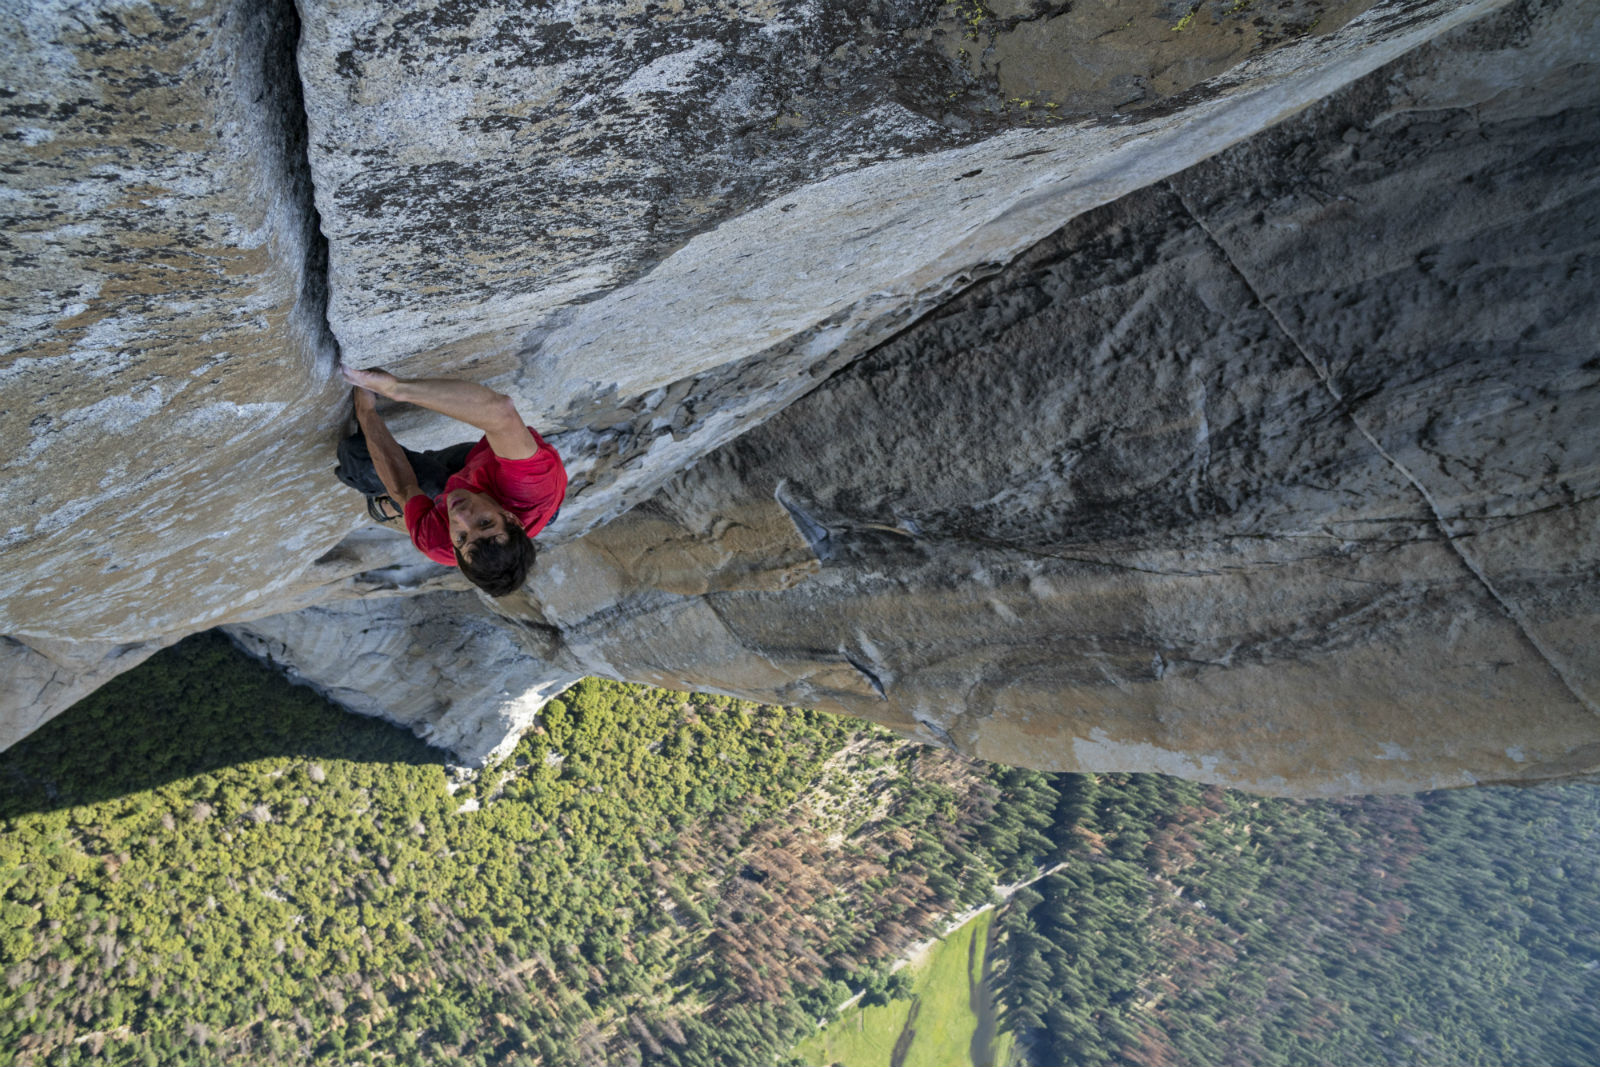 A typically thrilling scene from Free Solo.